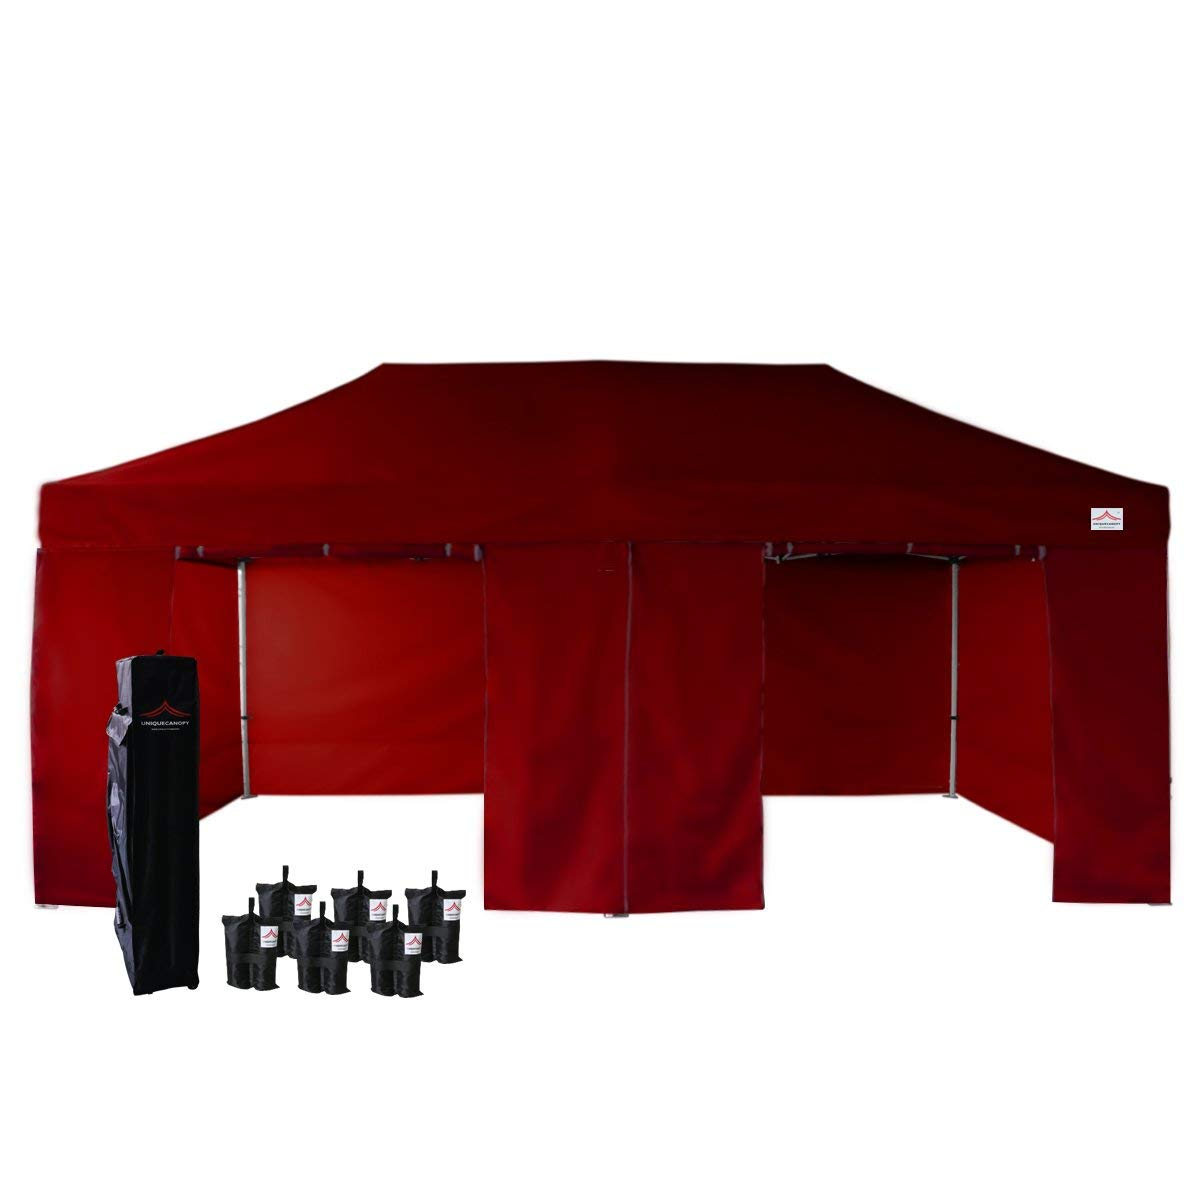 UNIQUECANOPY 500D Enhanced 10x20 Ez Pop up Canopy Portable Folded Commercial Canopy Car Shelter Wedding Party Show Tent with 4 Zippered Side Walls and Wheeled Carrying Bag Dark Wine Red